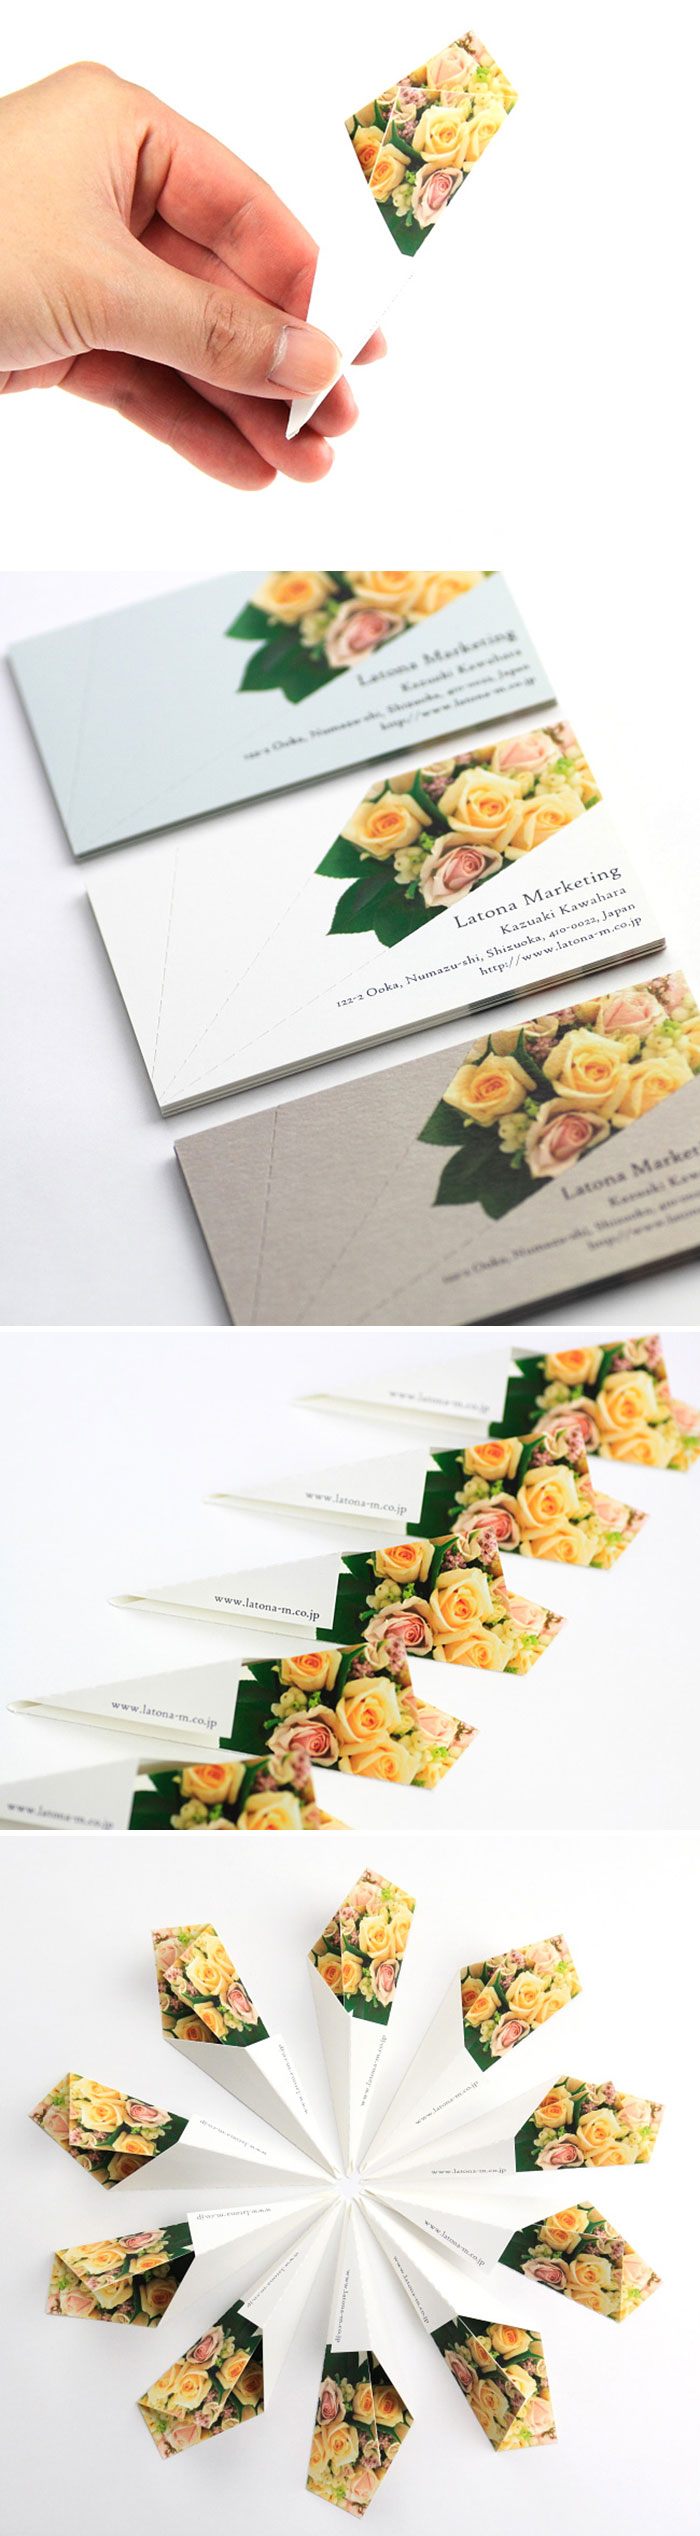 """This Is A Business Card Designed To """"Put A Smile On One's Face."""" When Folded, It Turns Into A Flower Bouquet"""